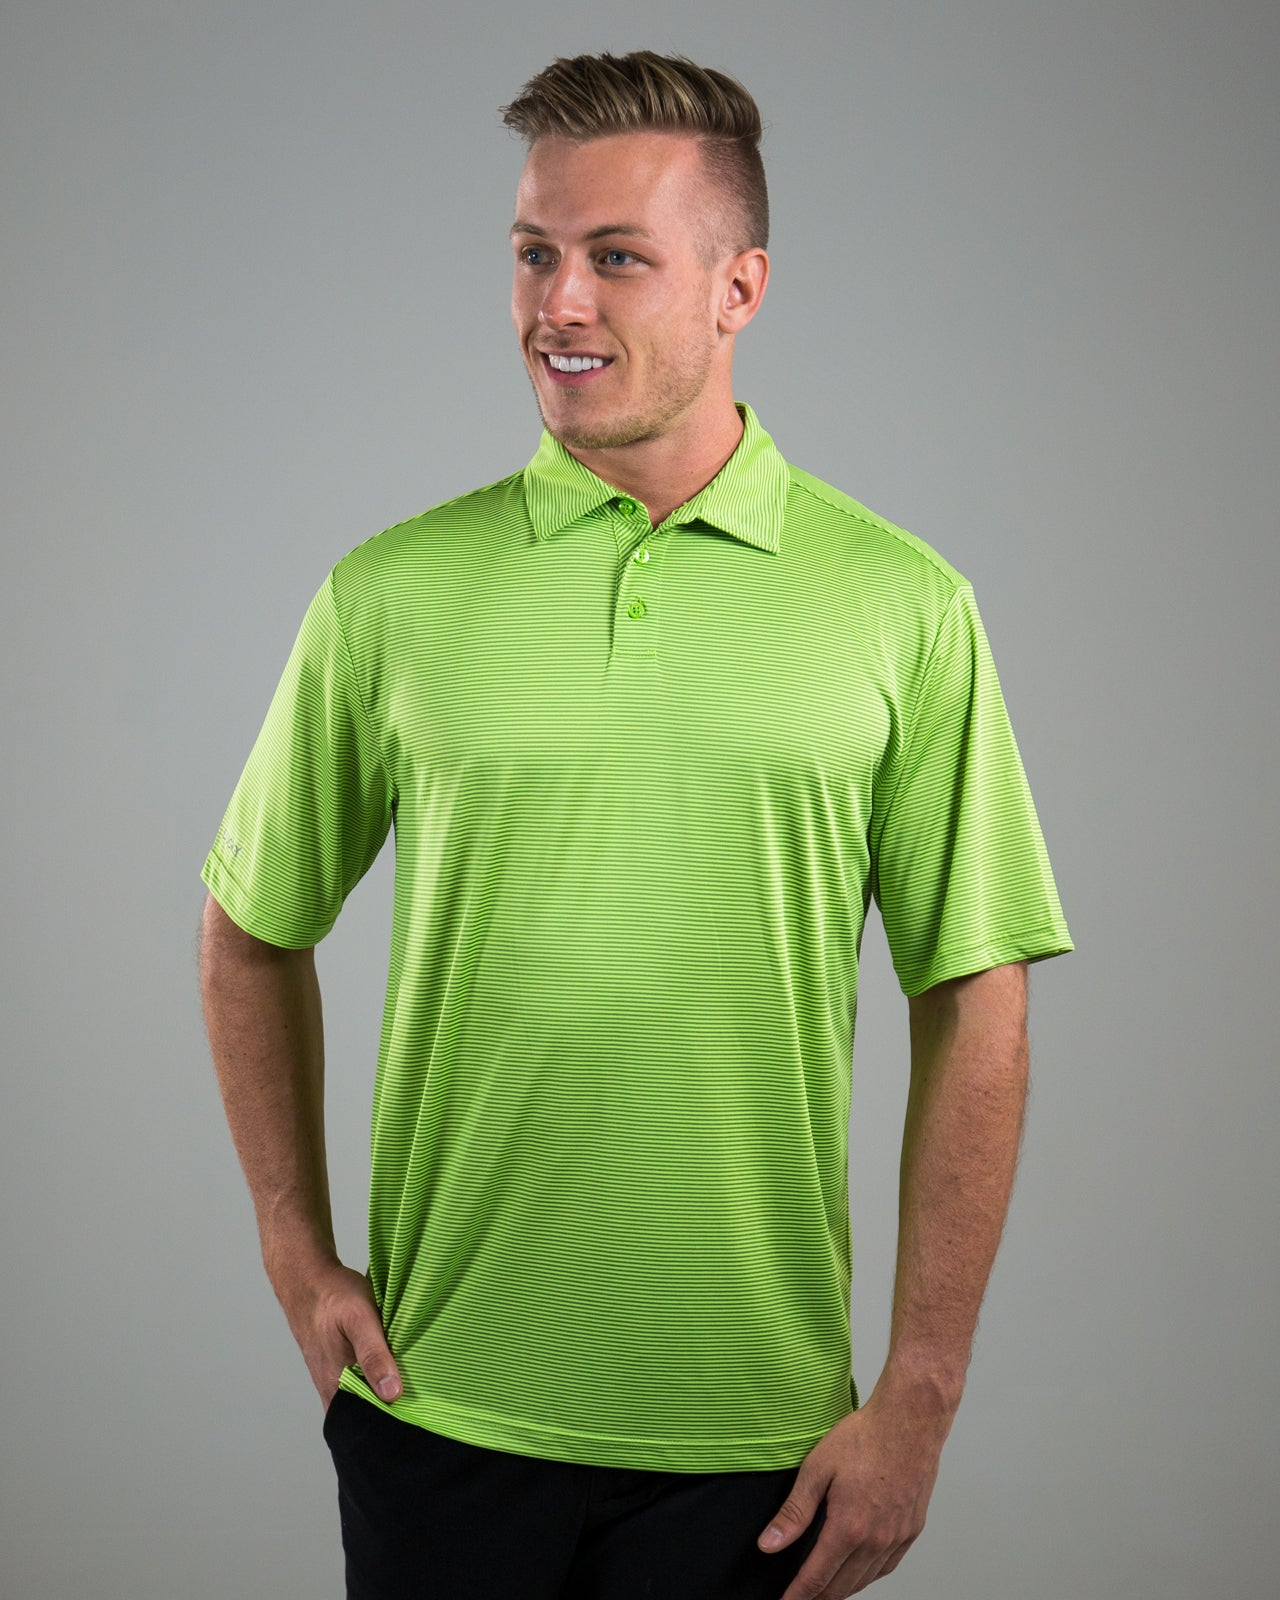 Vanguard Polo - Lime